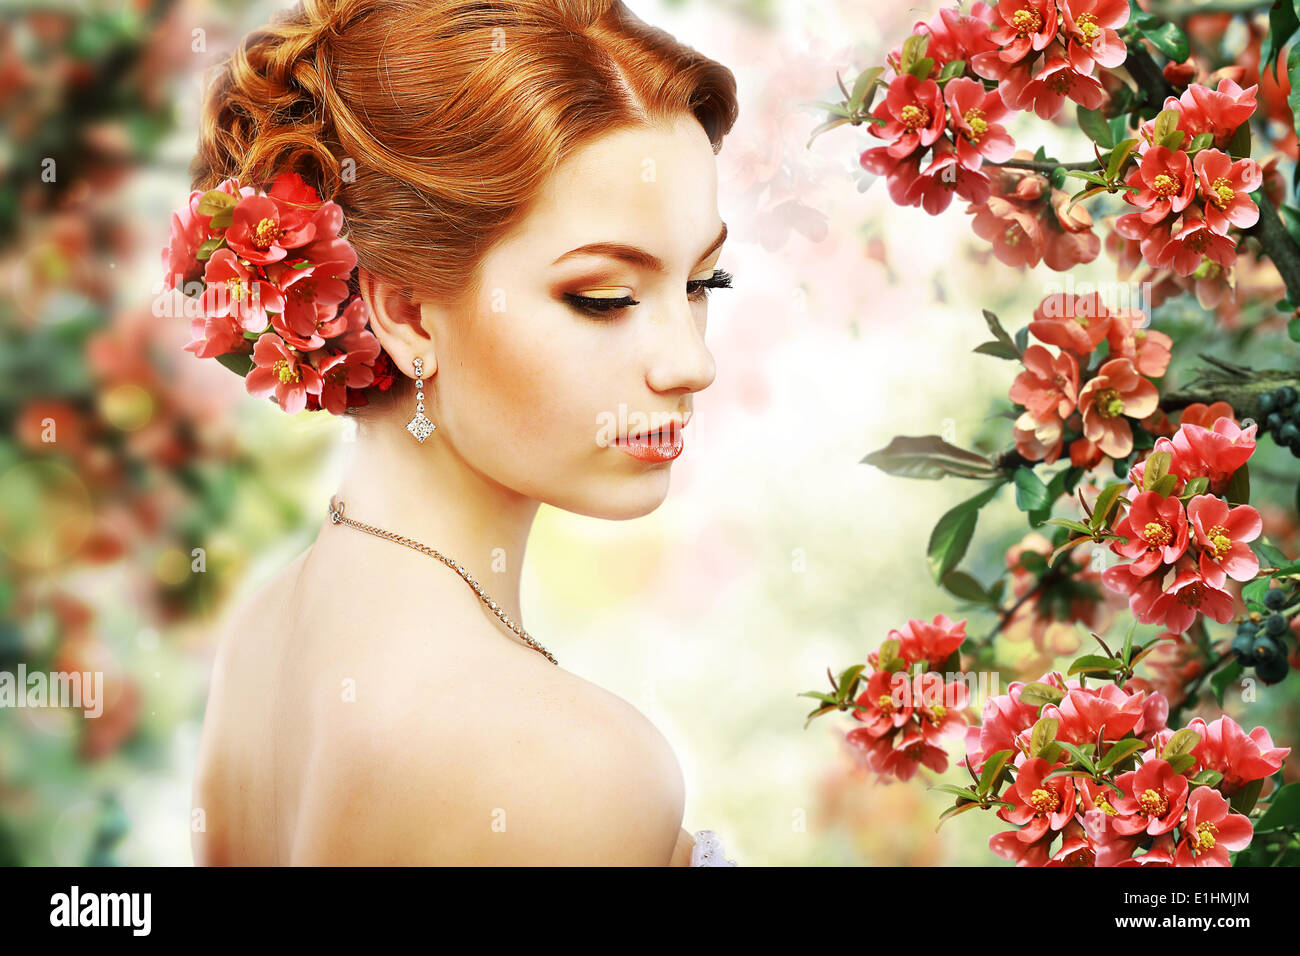 Relaxation. Profile of Red Hair Beauty over Natural Floral Background. Nature. Blossom - Stock Image